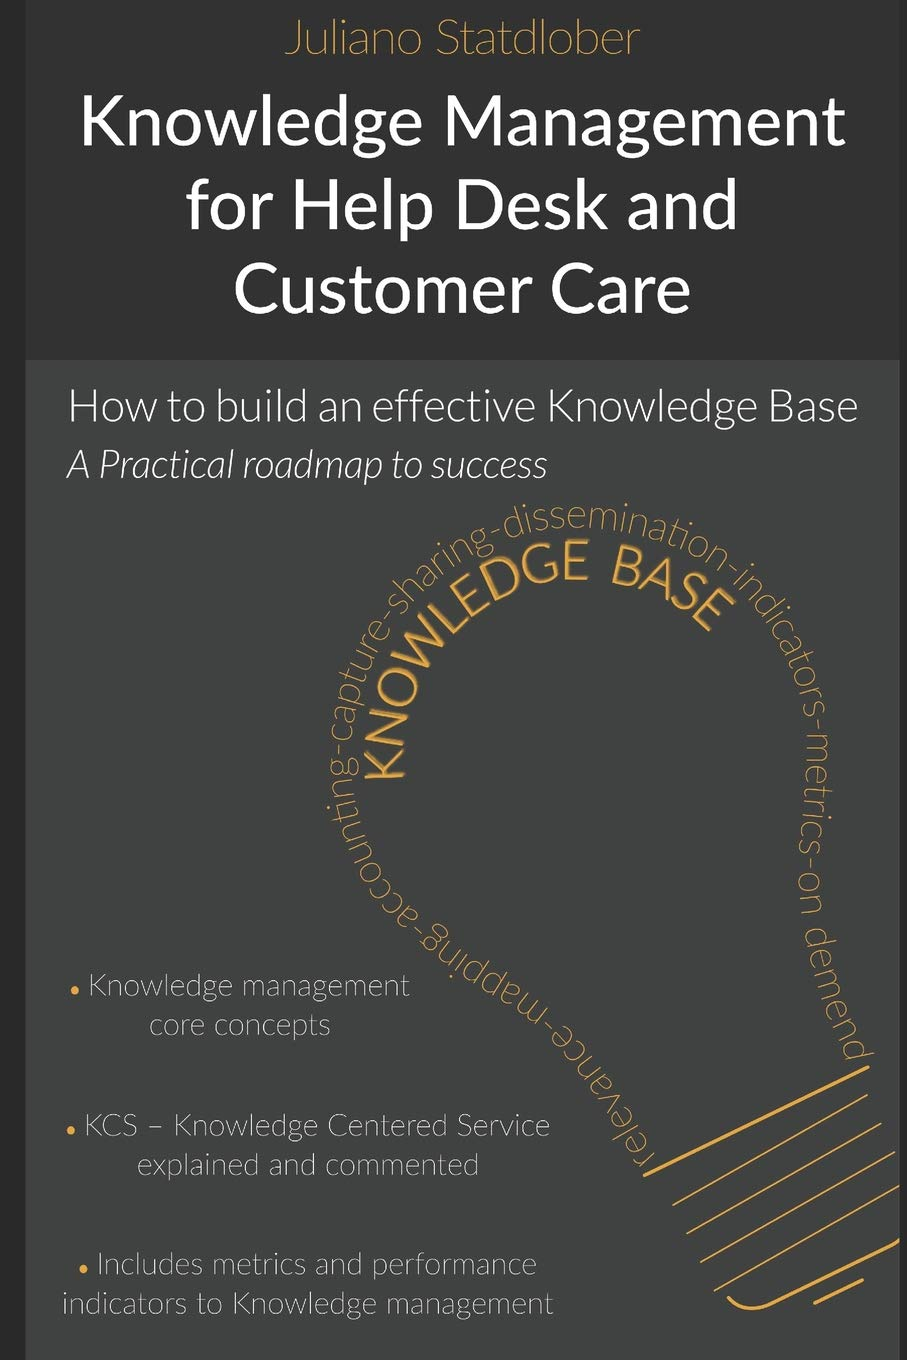 a roadmap to success Knowledge Management for Help Desk and Customer Care How to build an effective Knowledge Base